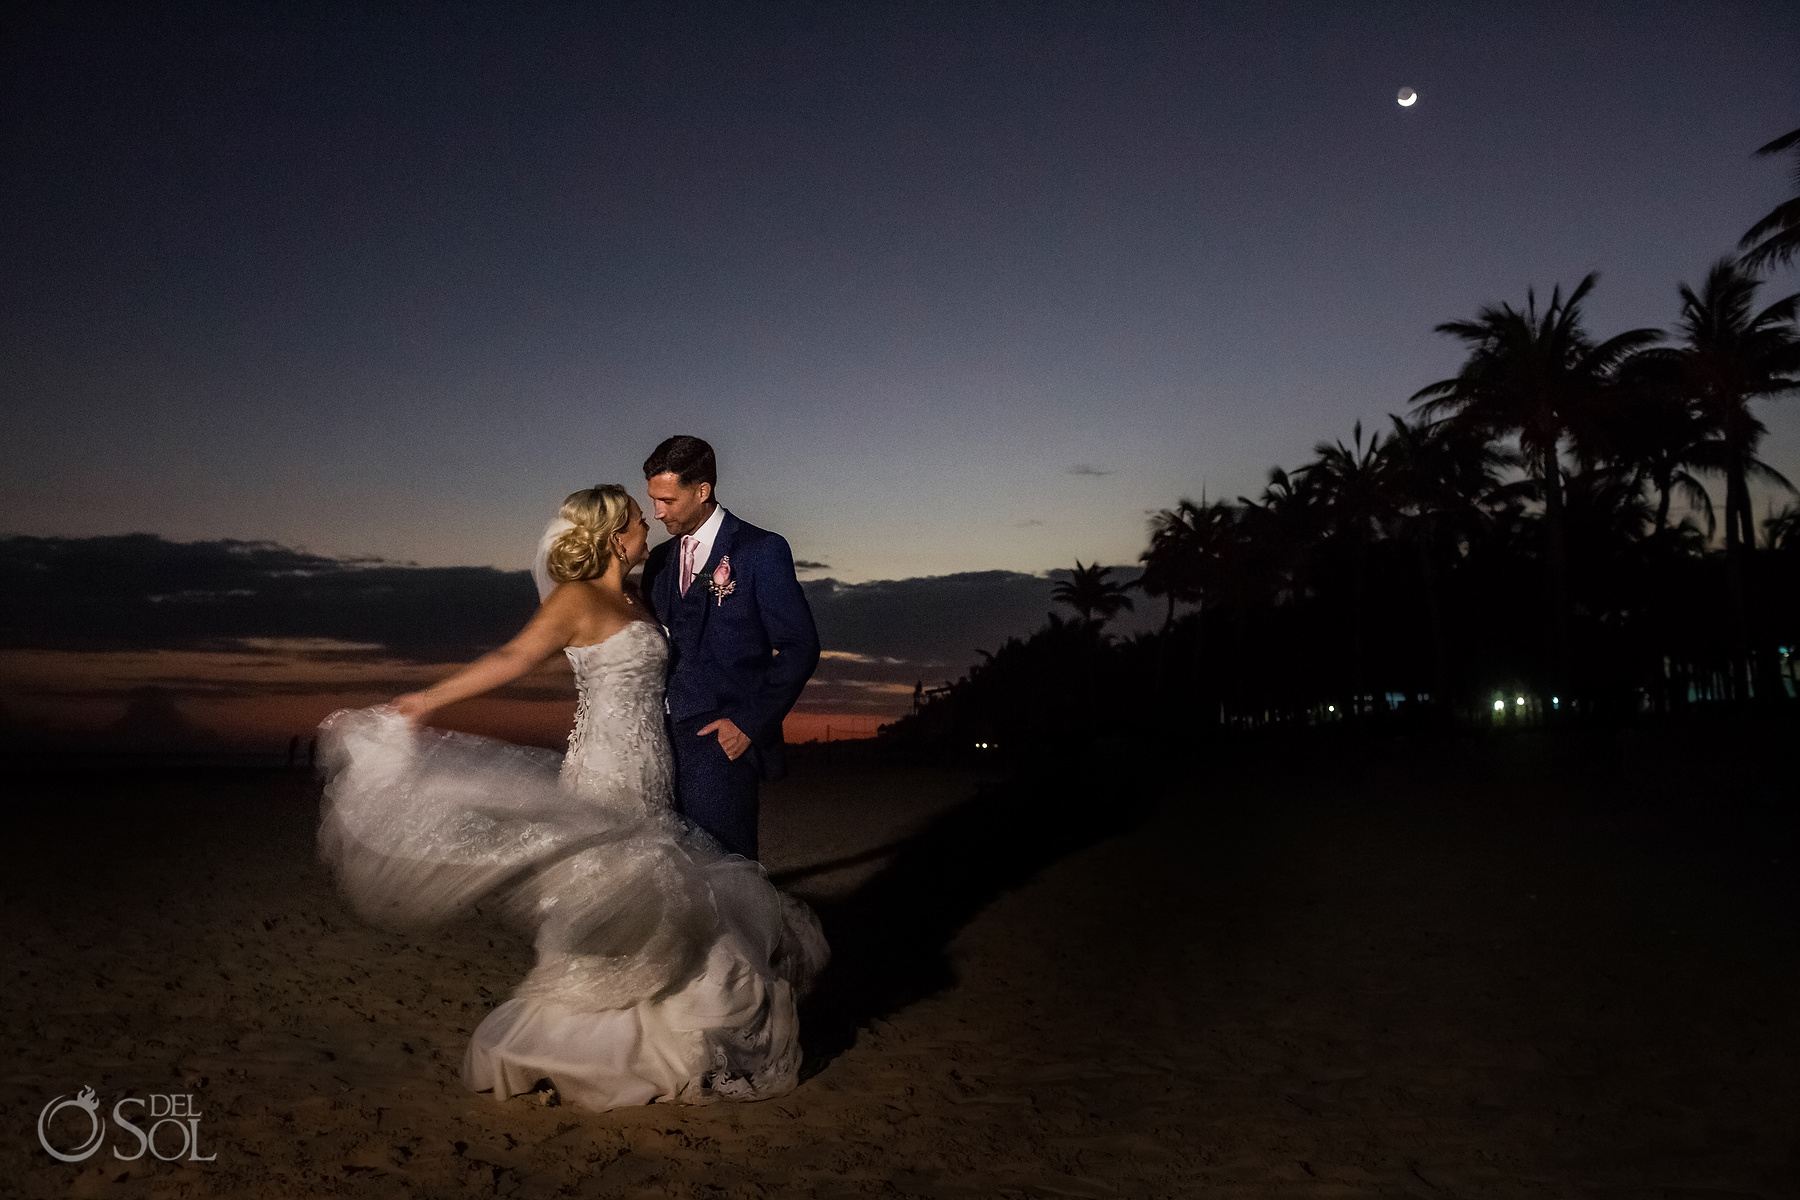 Groom and Bride sunset night photoshoot with moon at Riu Palace Mexico Wedding Photographer